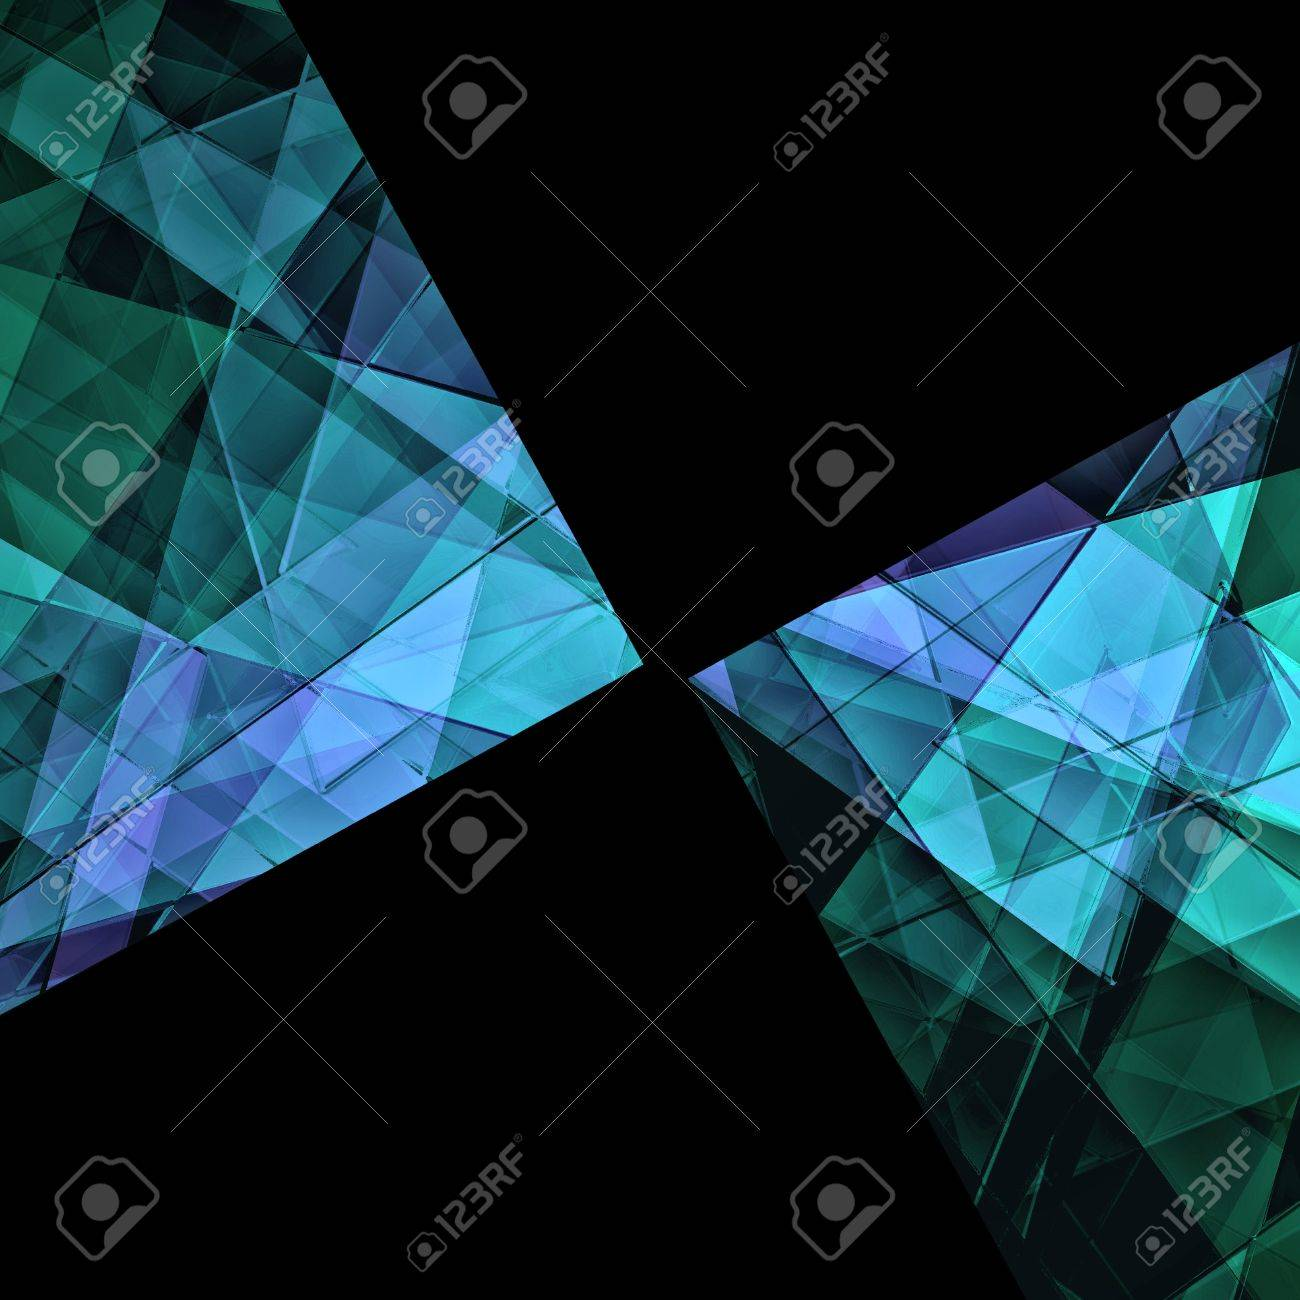 abstract geometric background Stock Photo - 20894746